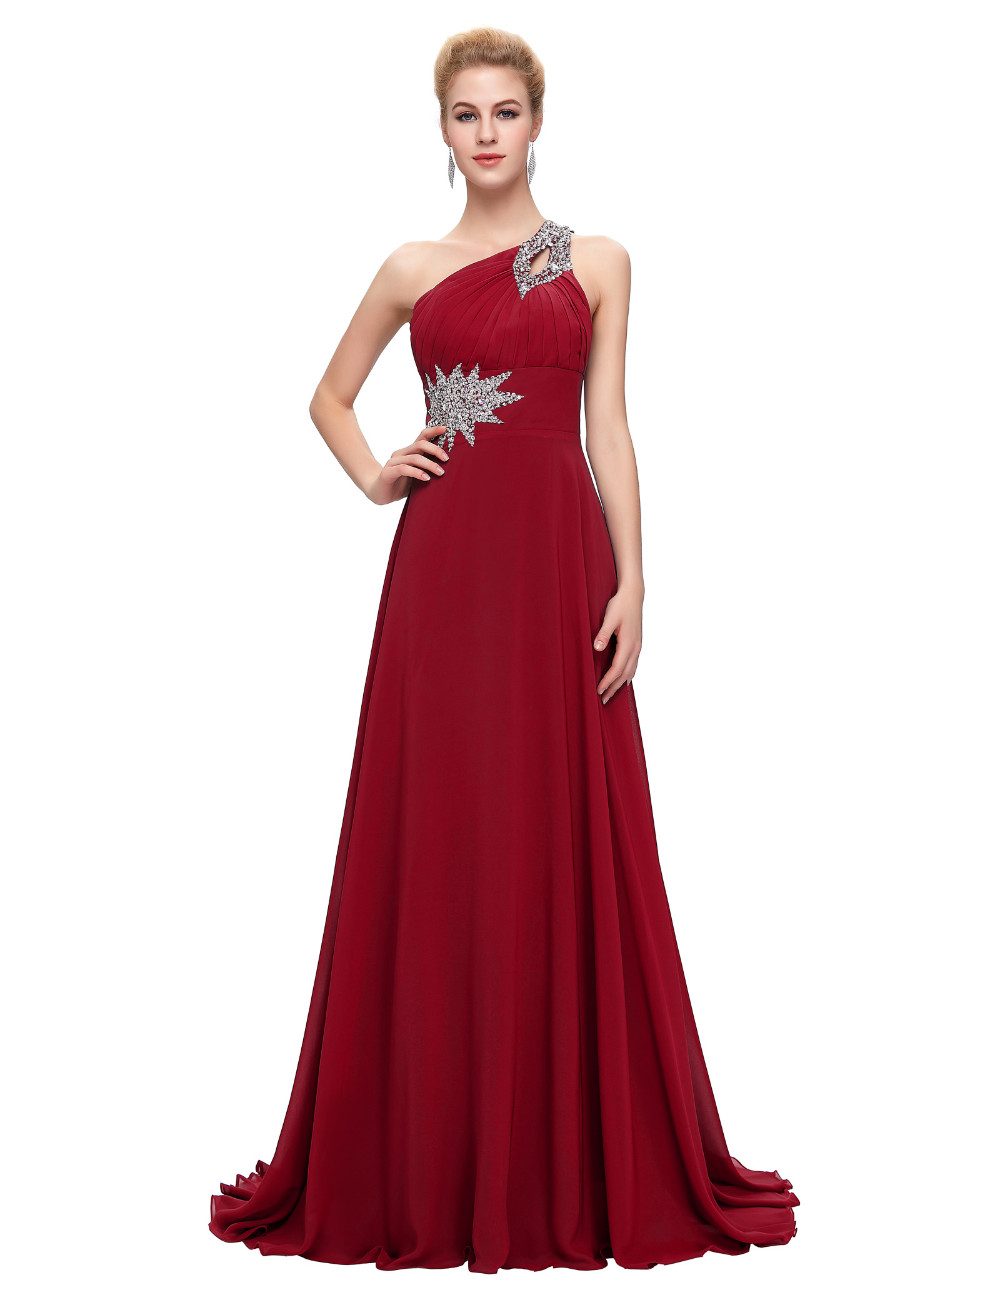 Elegant One Shoulder Long Bridesmaid Dress 14